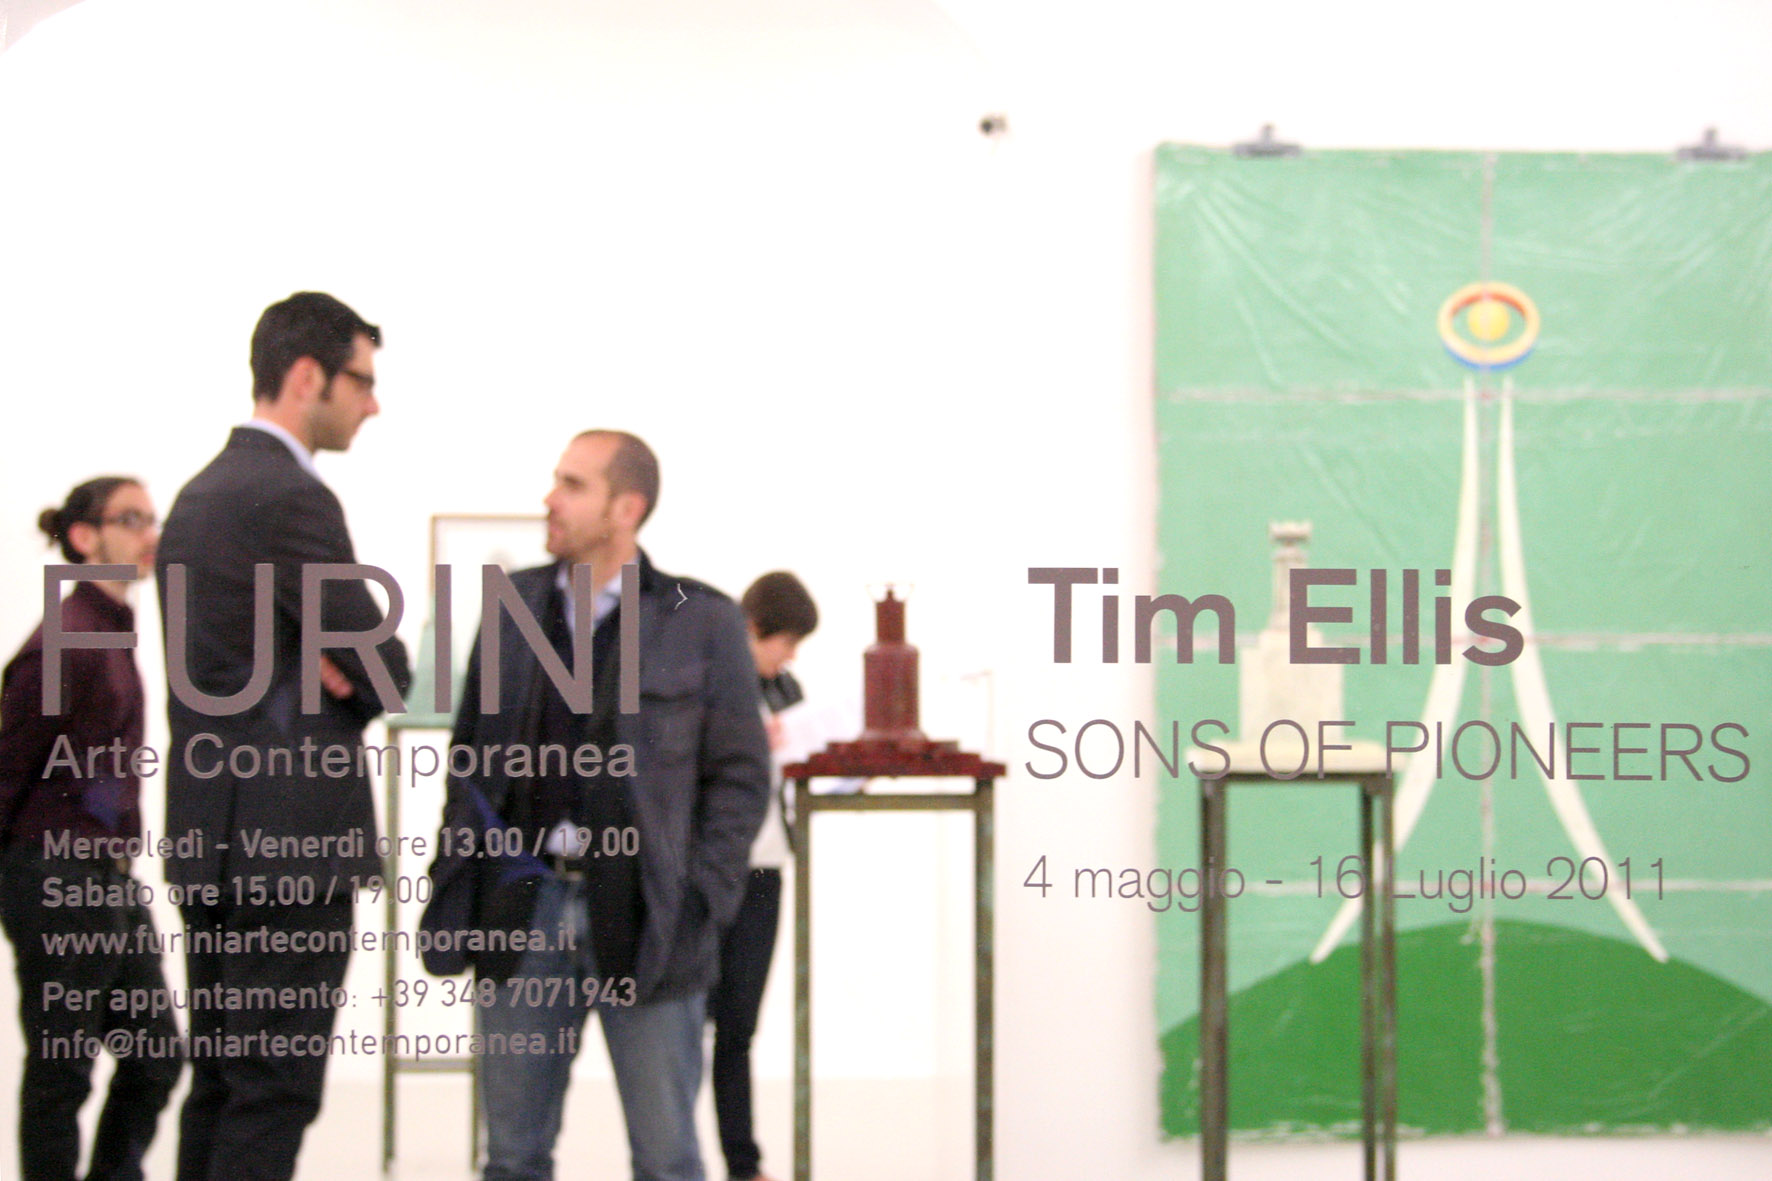 Tim Ellis – Sons of the Pioneers - veduta della mostra presso Furini Arte Contemporanea, Roma 2011